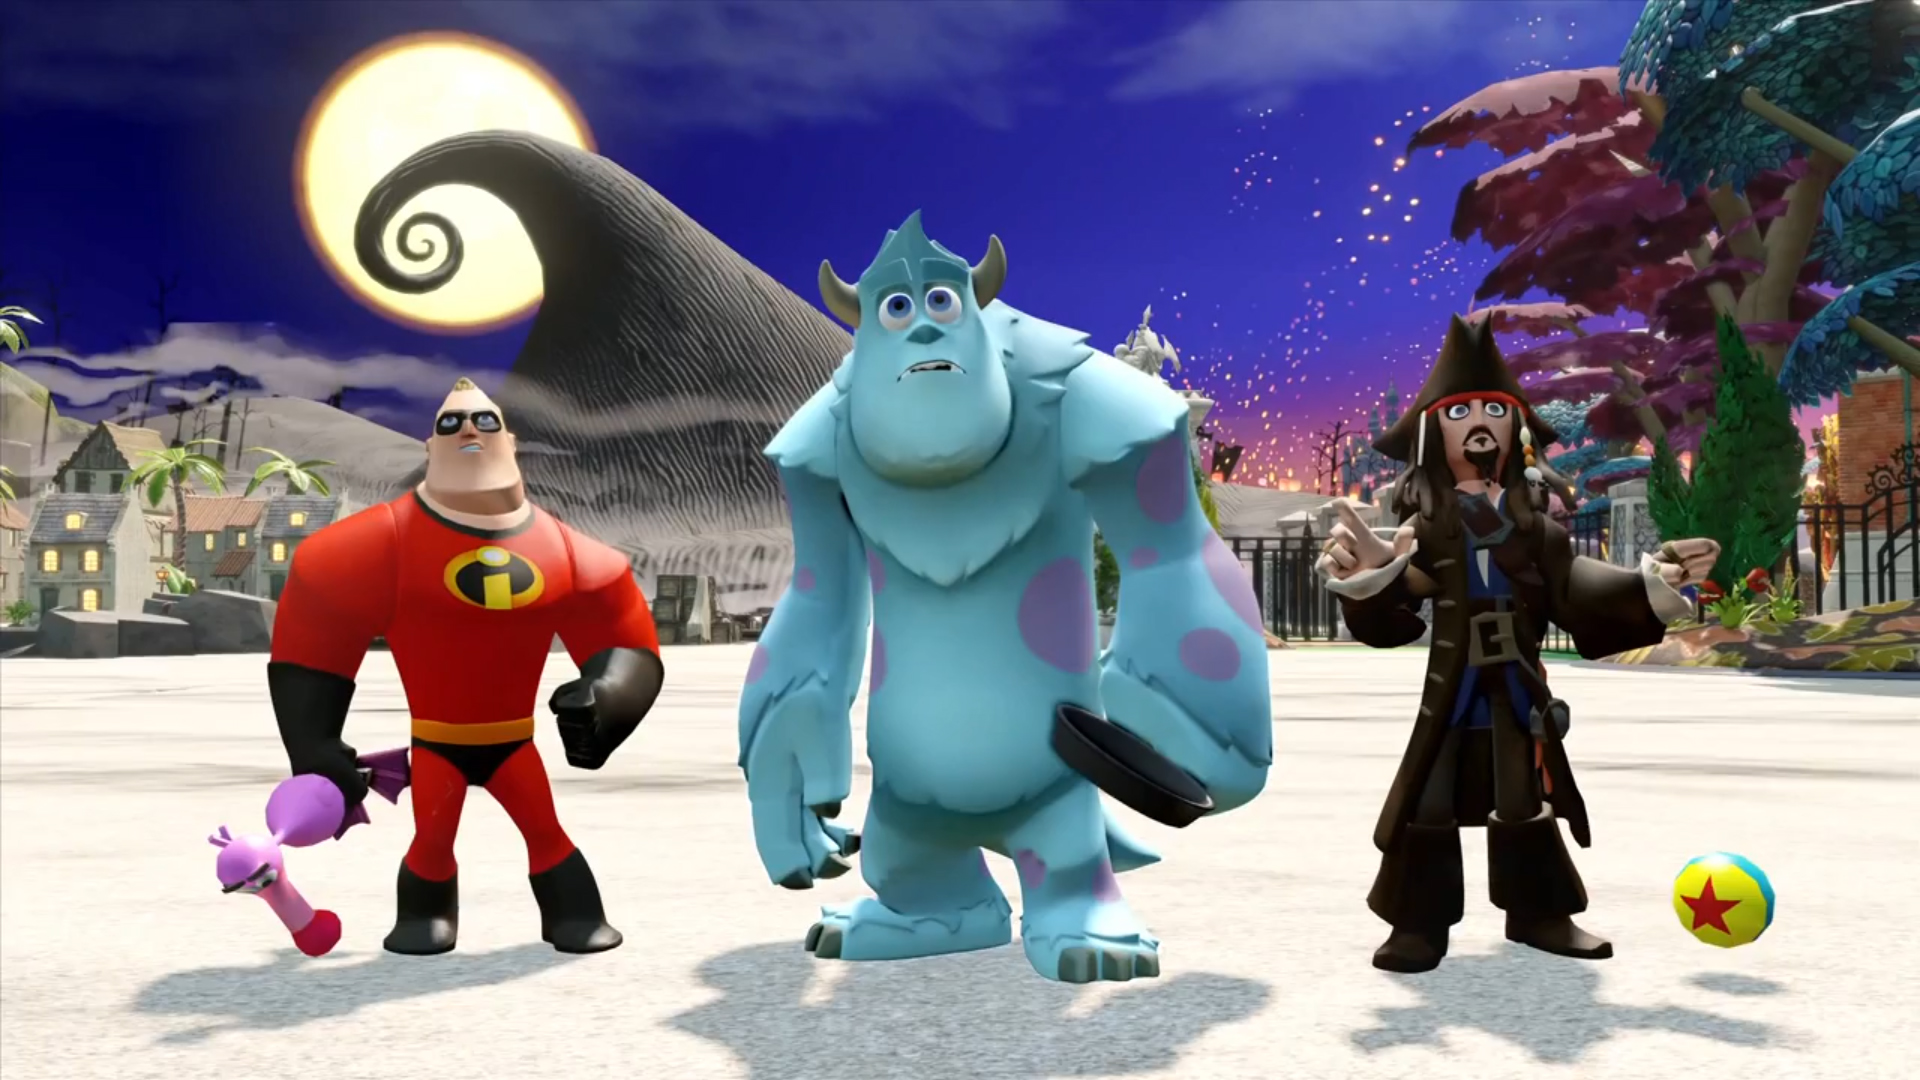 Disney Infinity to include Star Wars and Marvel characters?